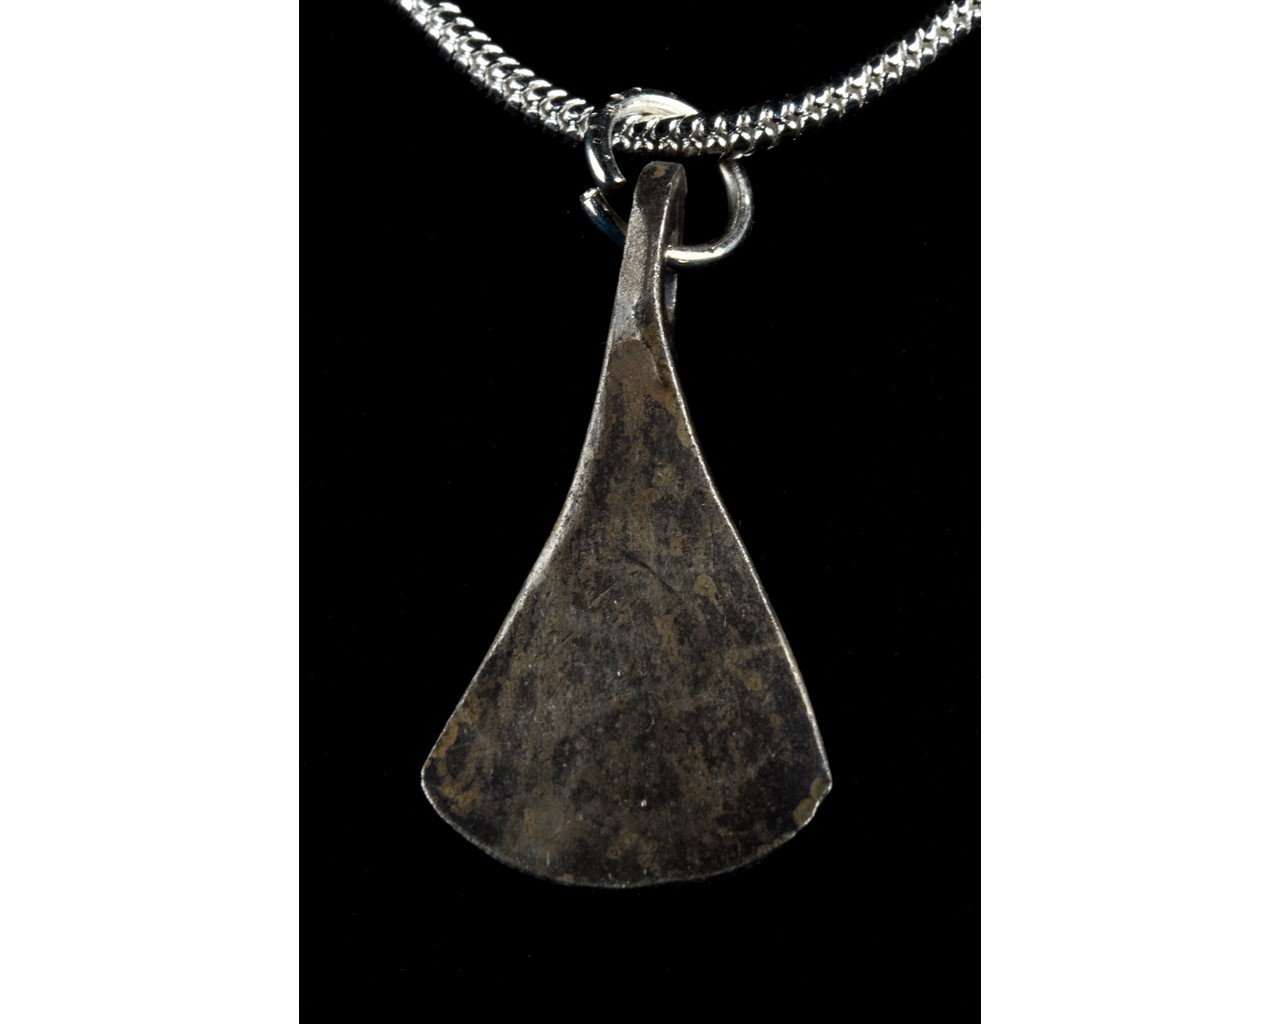 MEDIEVAL SILVER AXE SHAPED PENDANT - Image 3 of 5